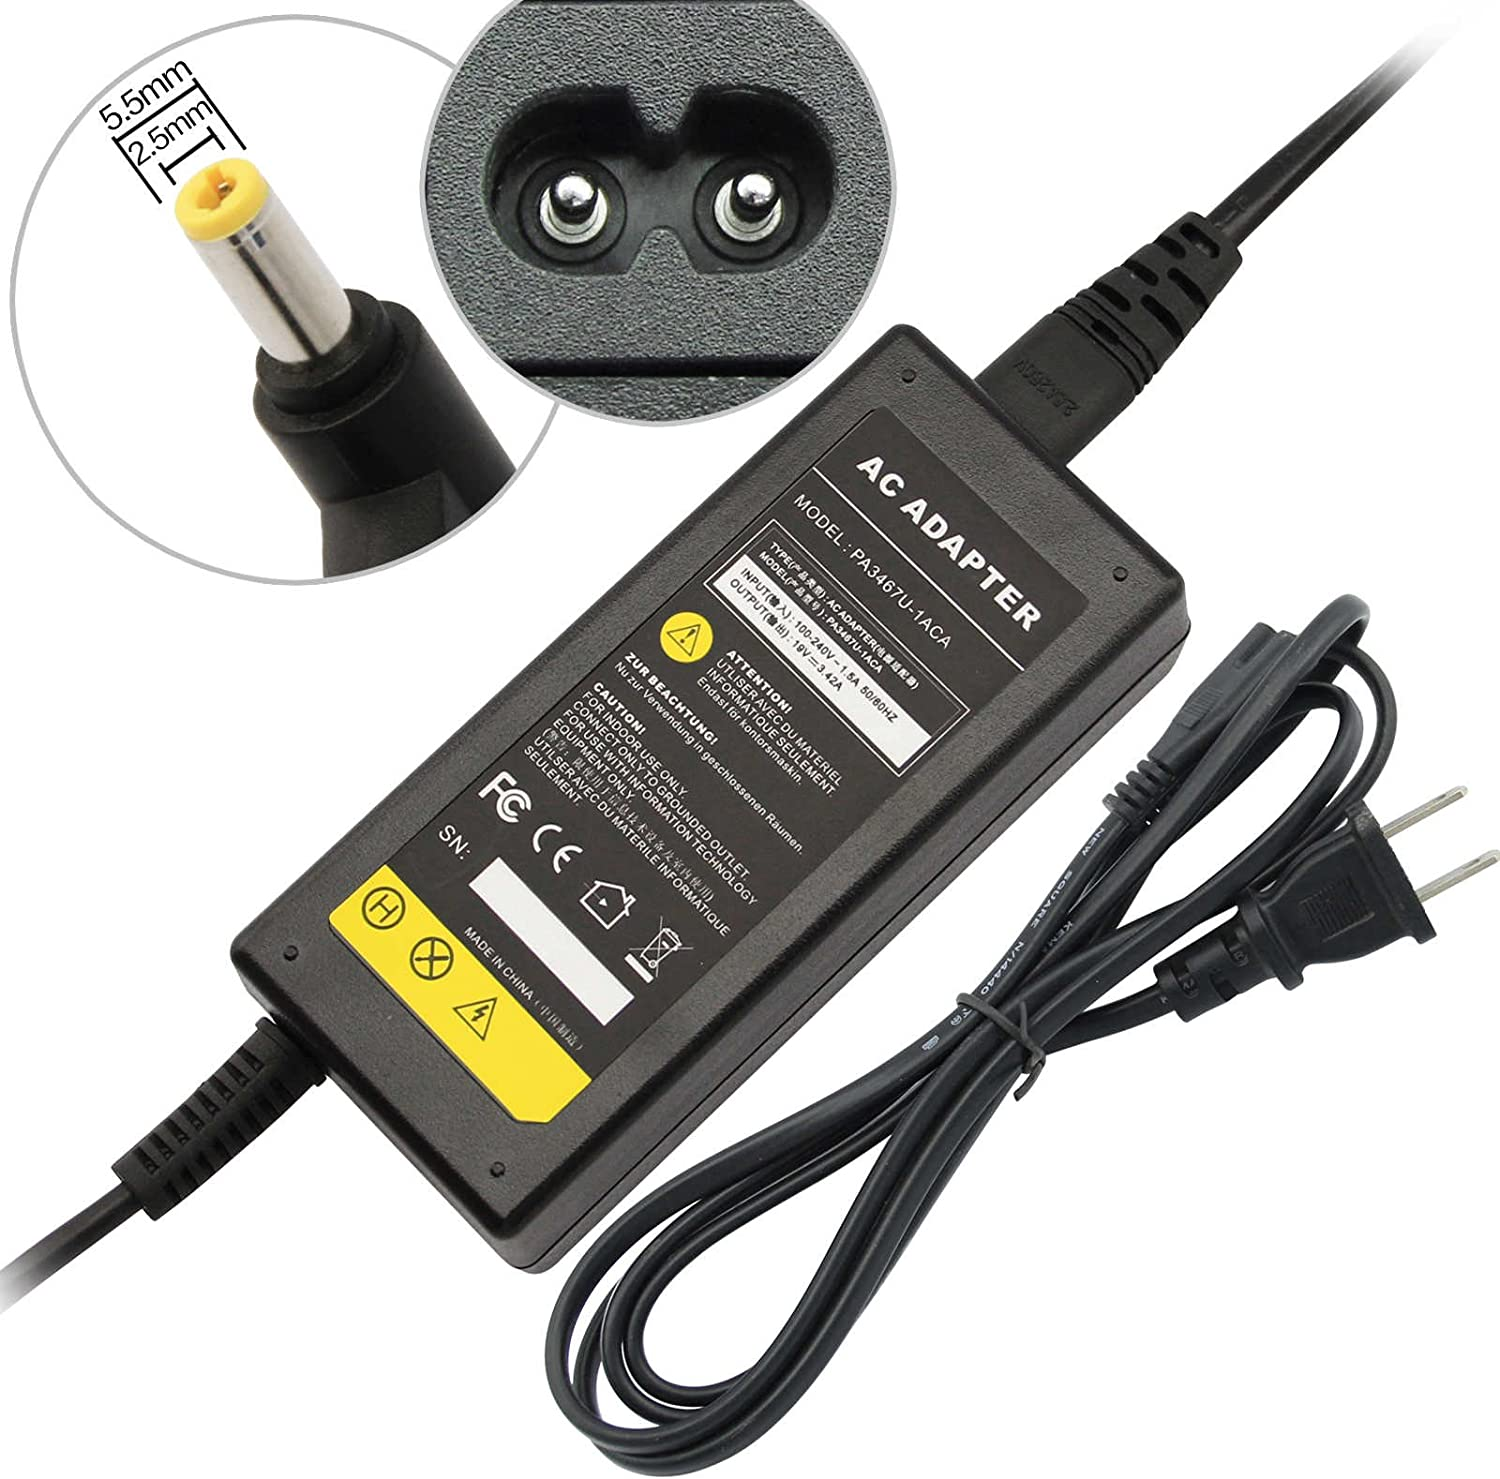 Amazon.com: AC Adapter Charger For Toshiba Satellite C855D ...